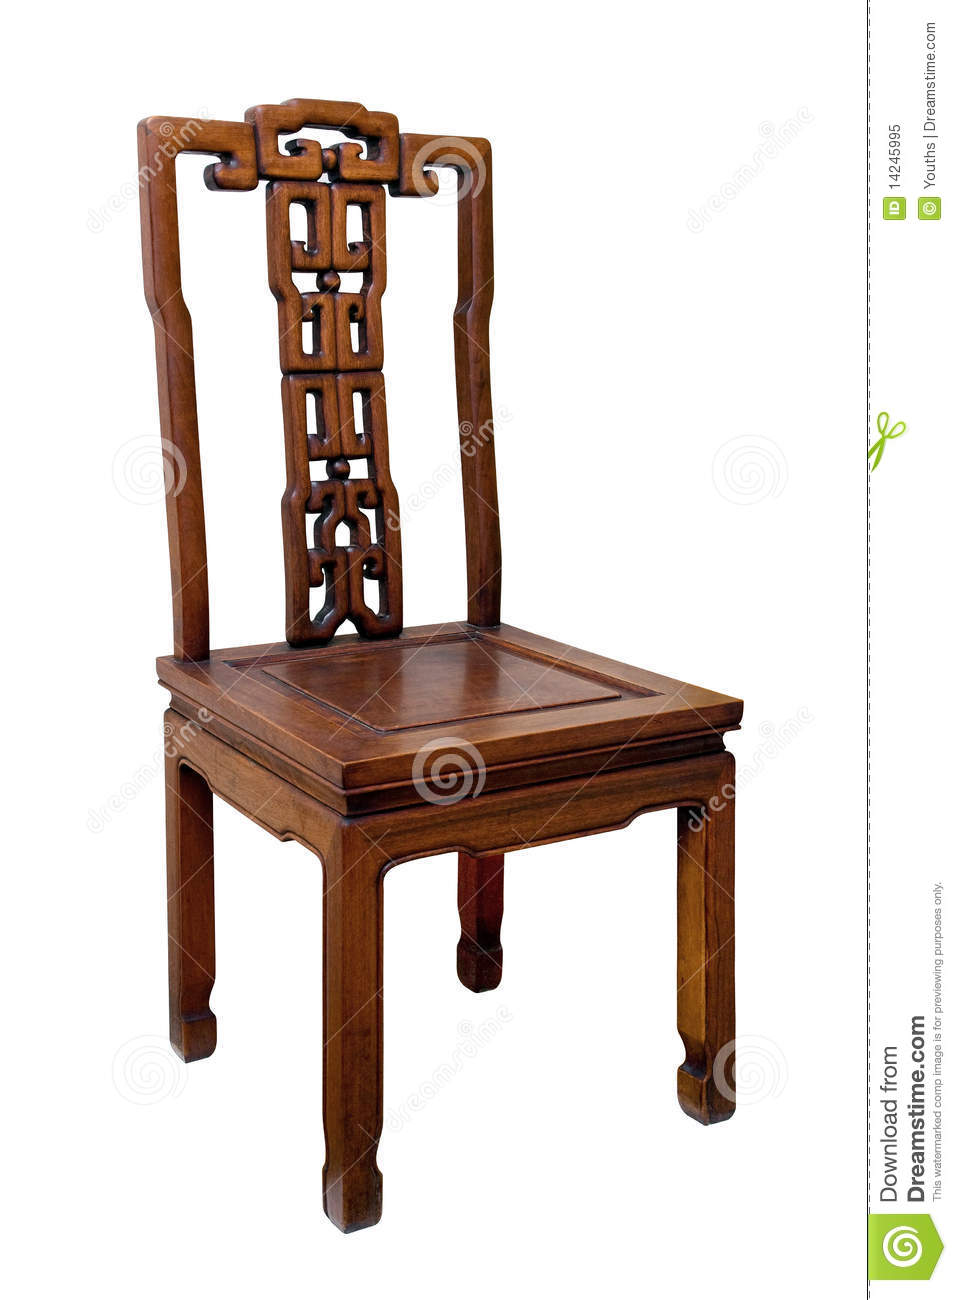 Chinese Antique Chair Isolated On White Background Royalty